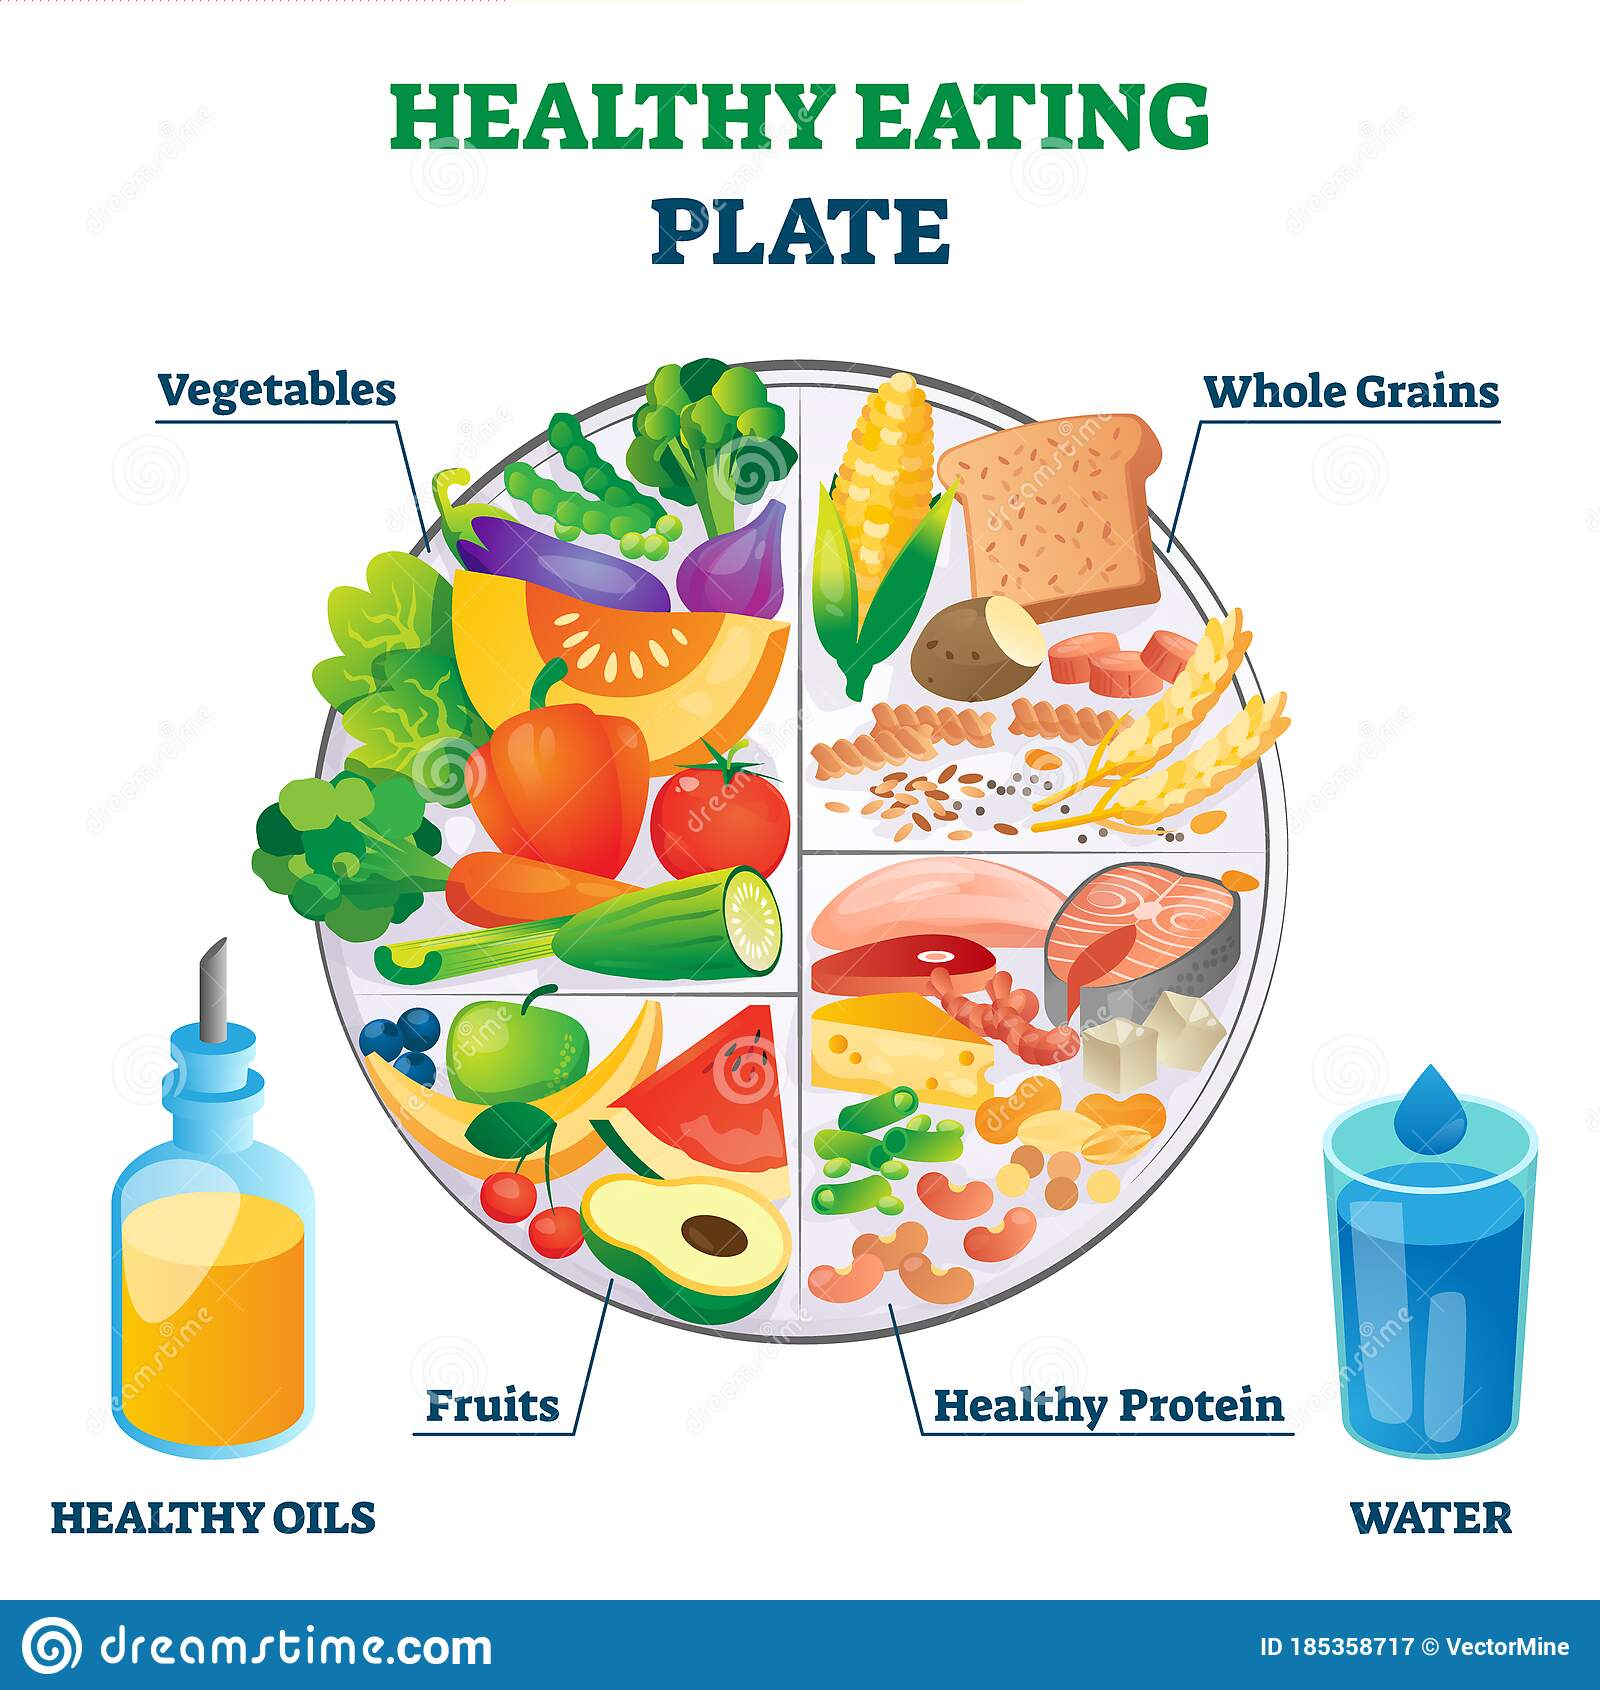 Healthy Eating Plate Vector Illustration. Labeled Educational Food Example.  Stock Vector - Illustration of diet, division: 185358717Dreamstime.com